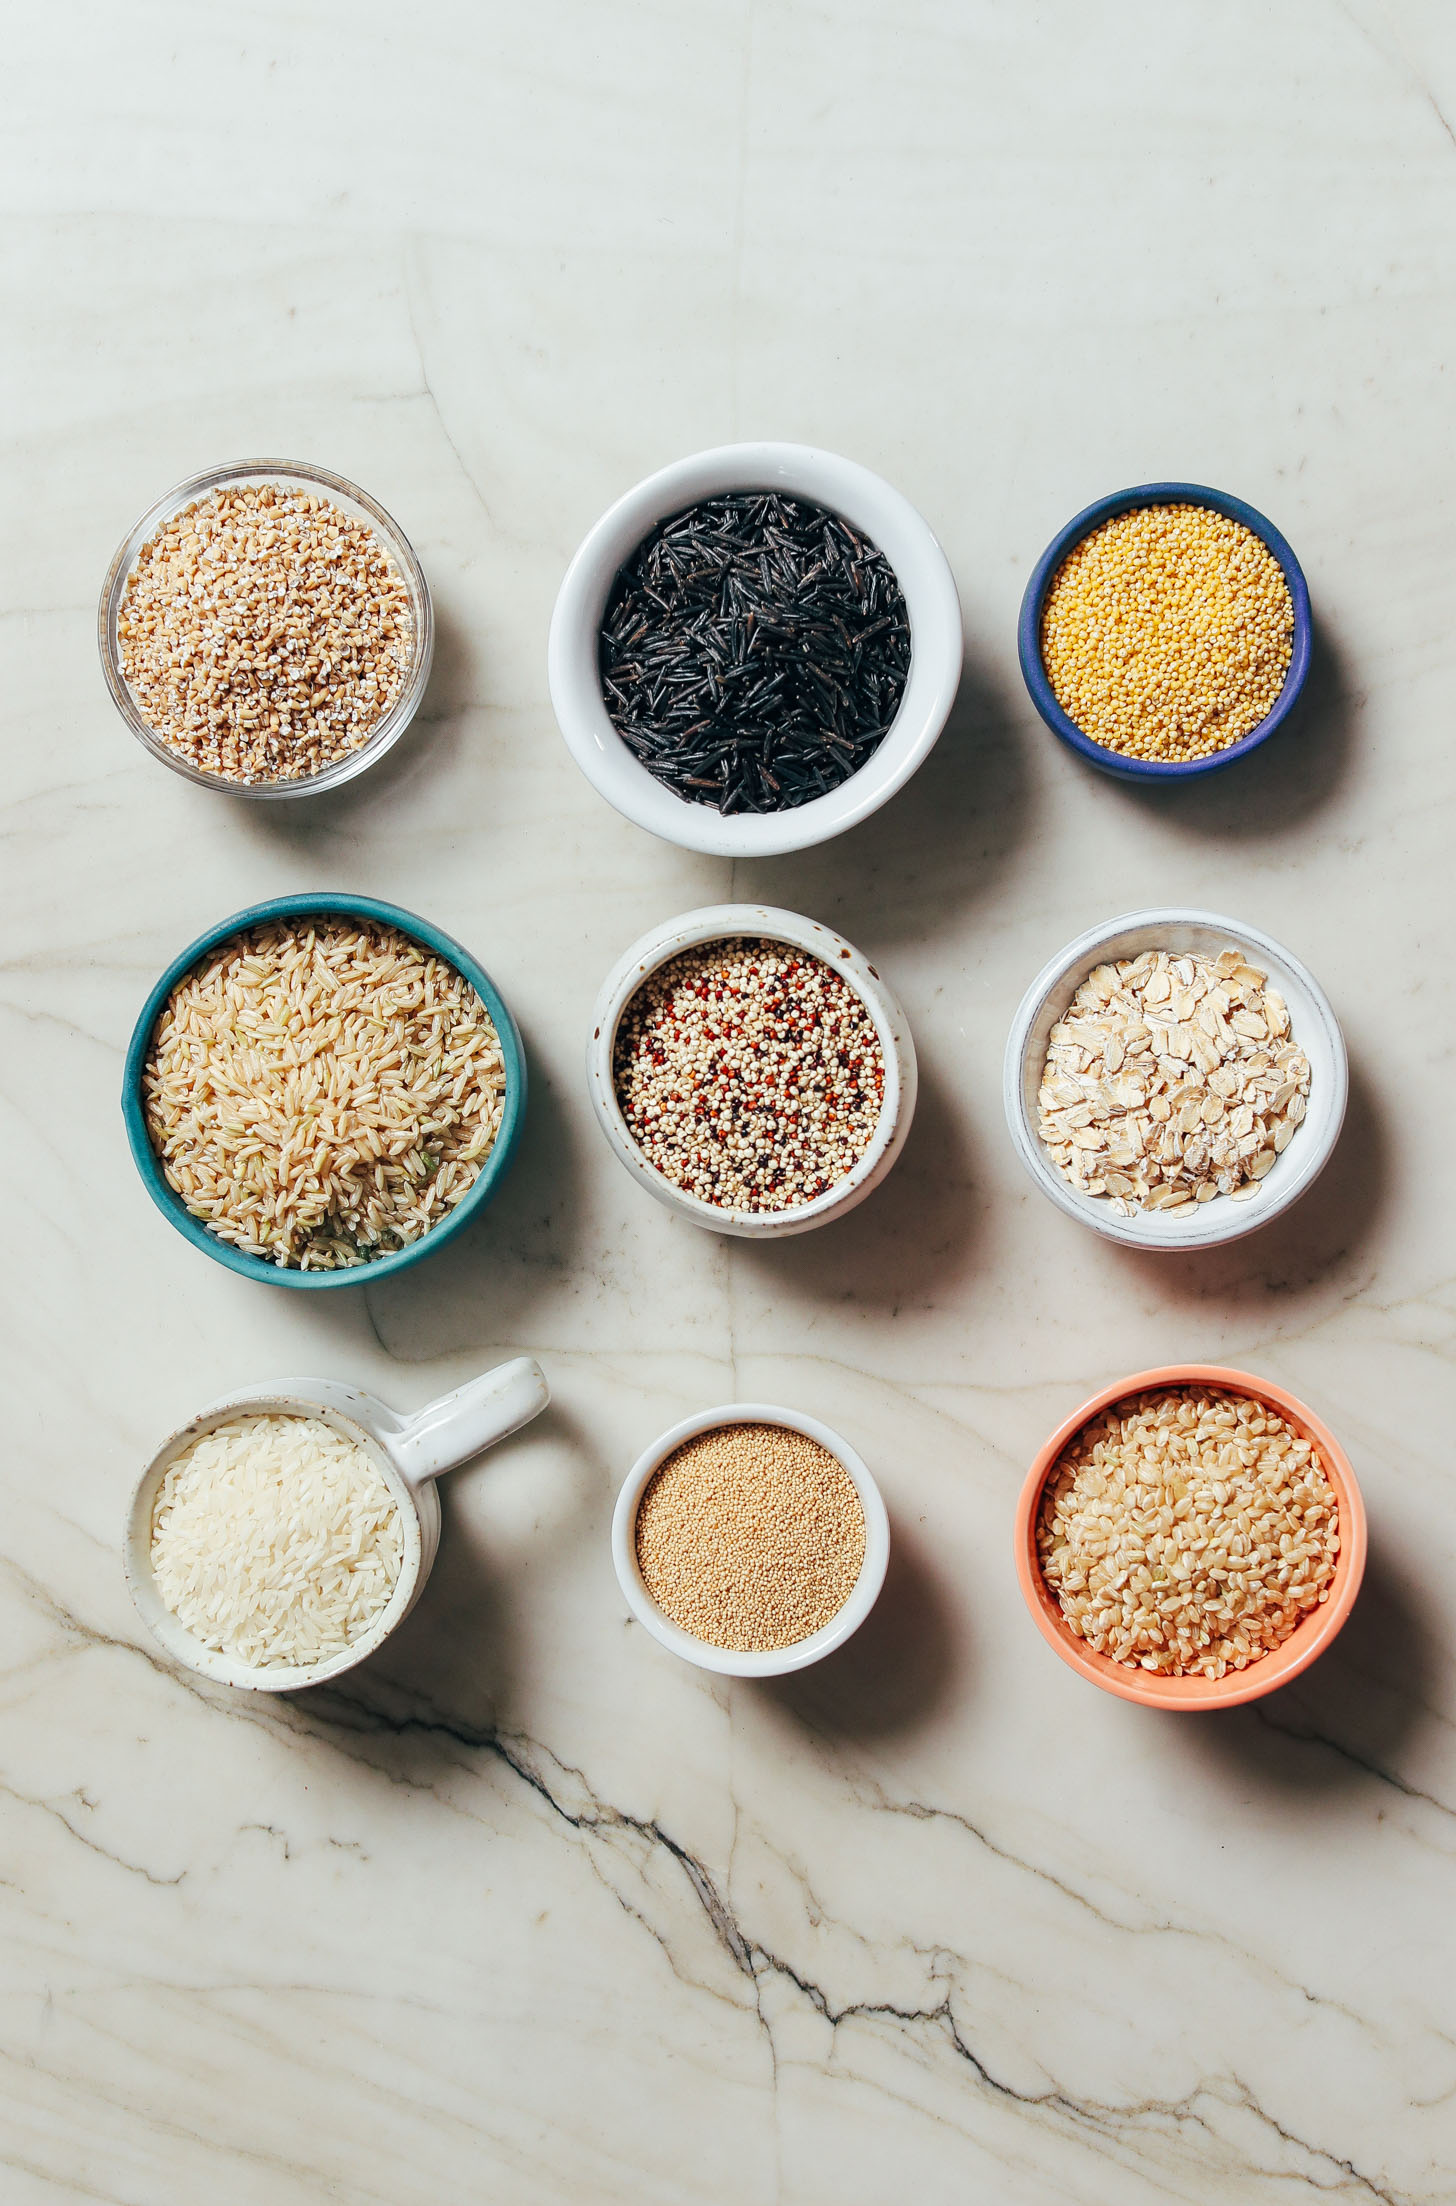 Assortment of grains for cooking in the Instant Pot